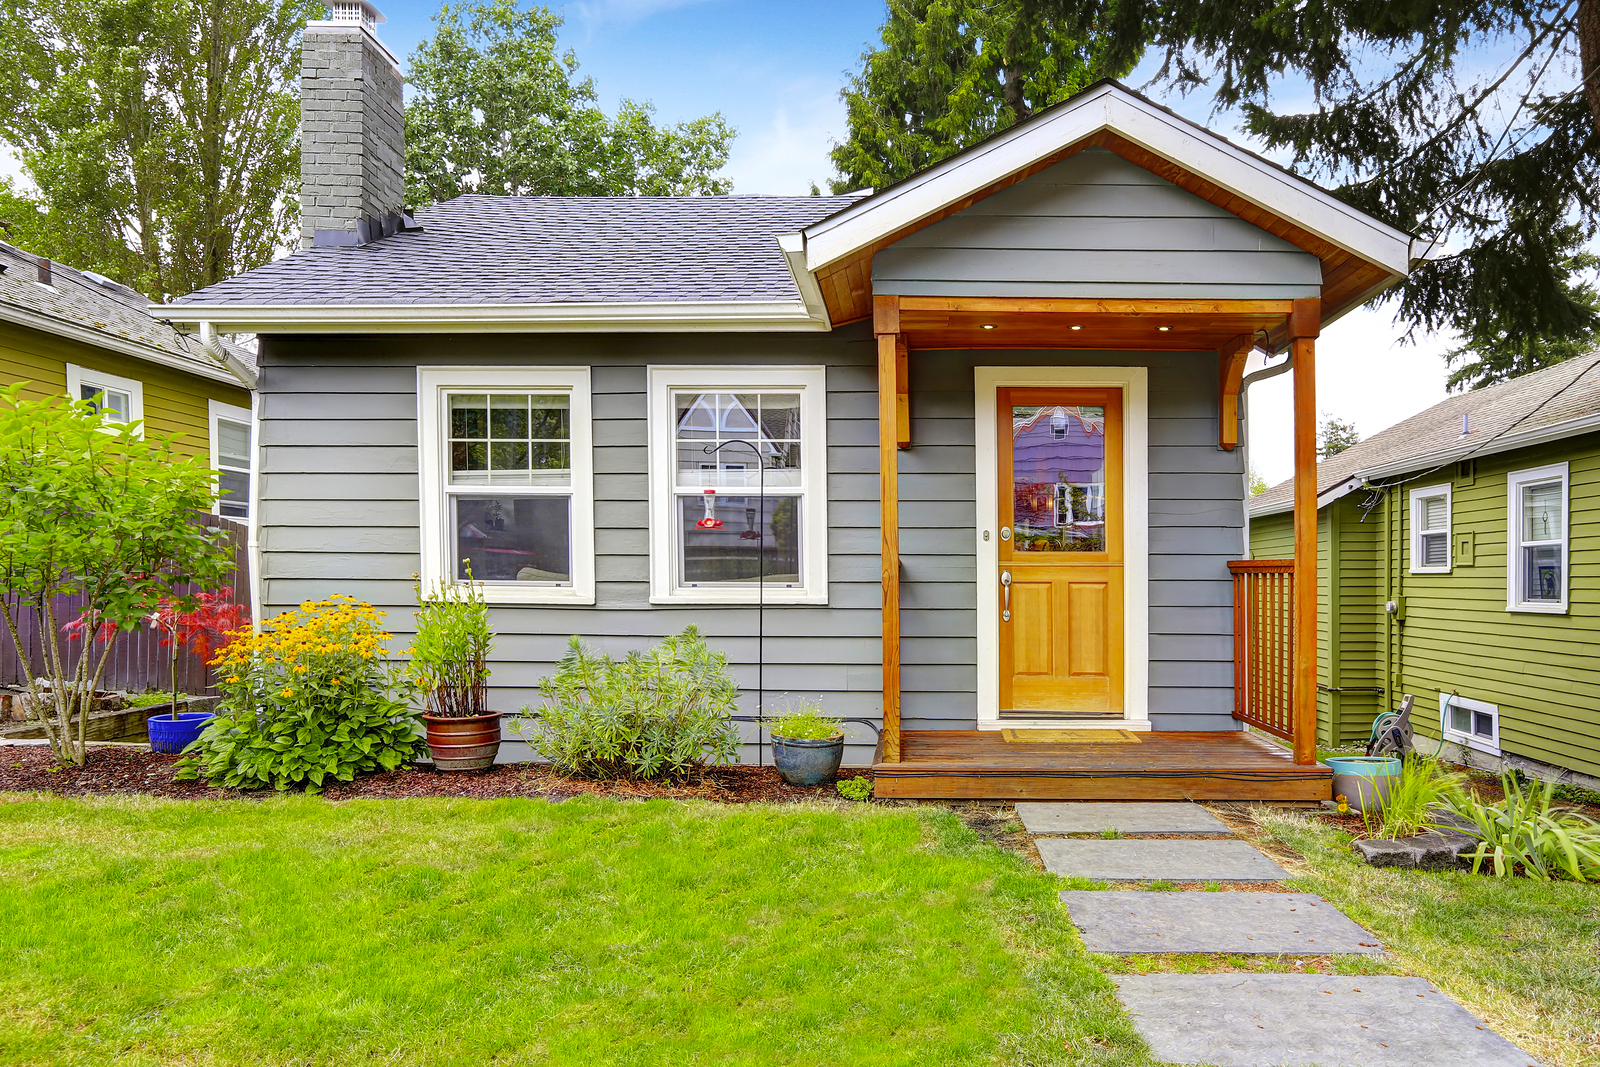 A recent study done by Taylor Morrison, reveals that homeowners prefer more yard space over living space.